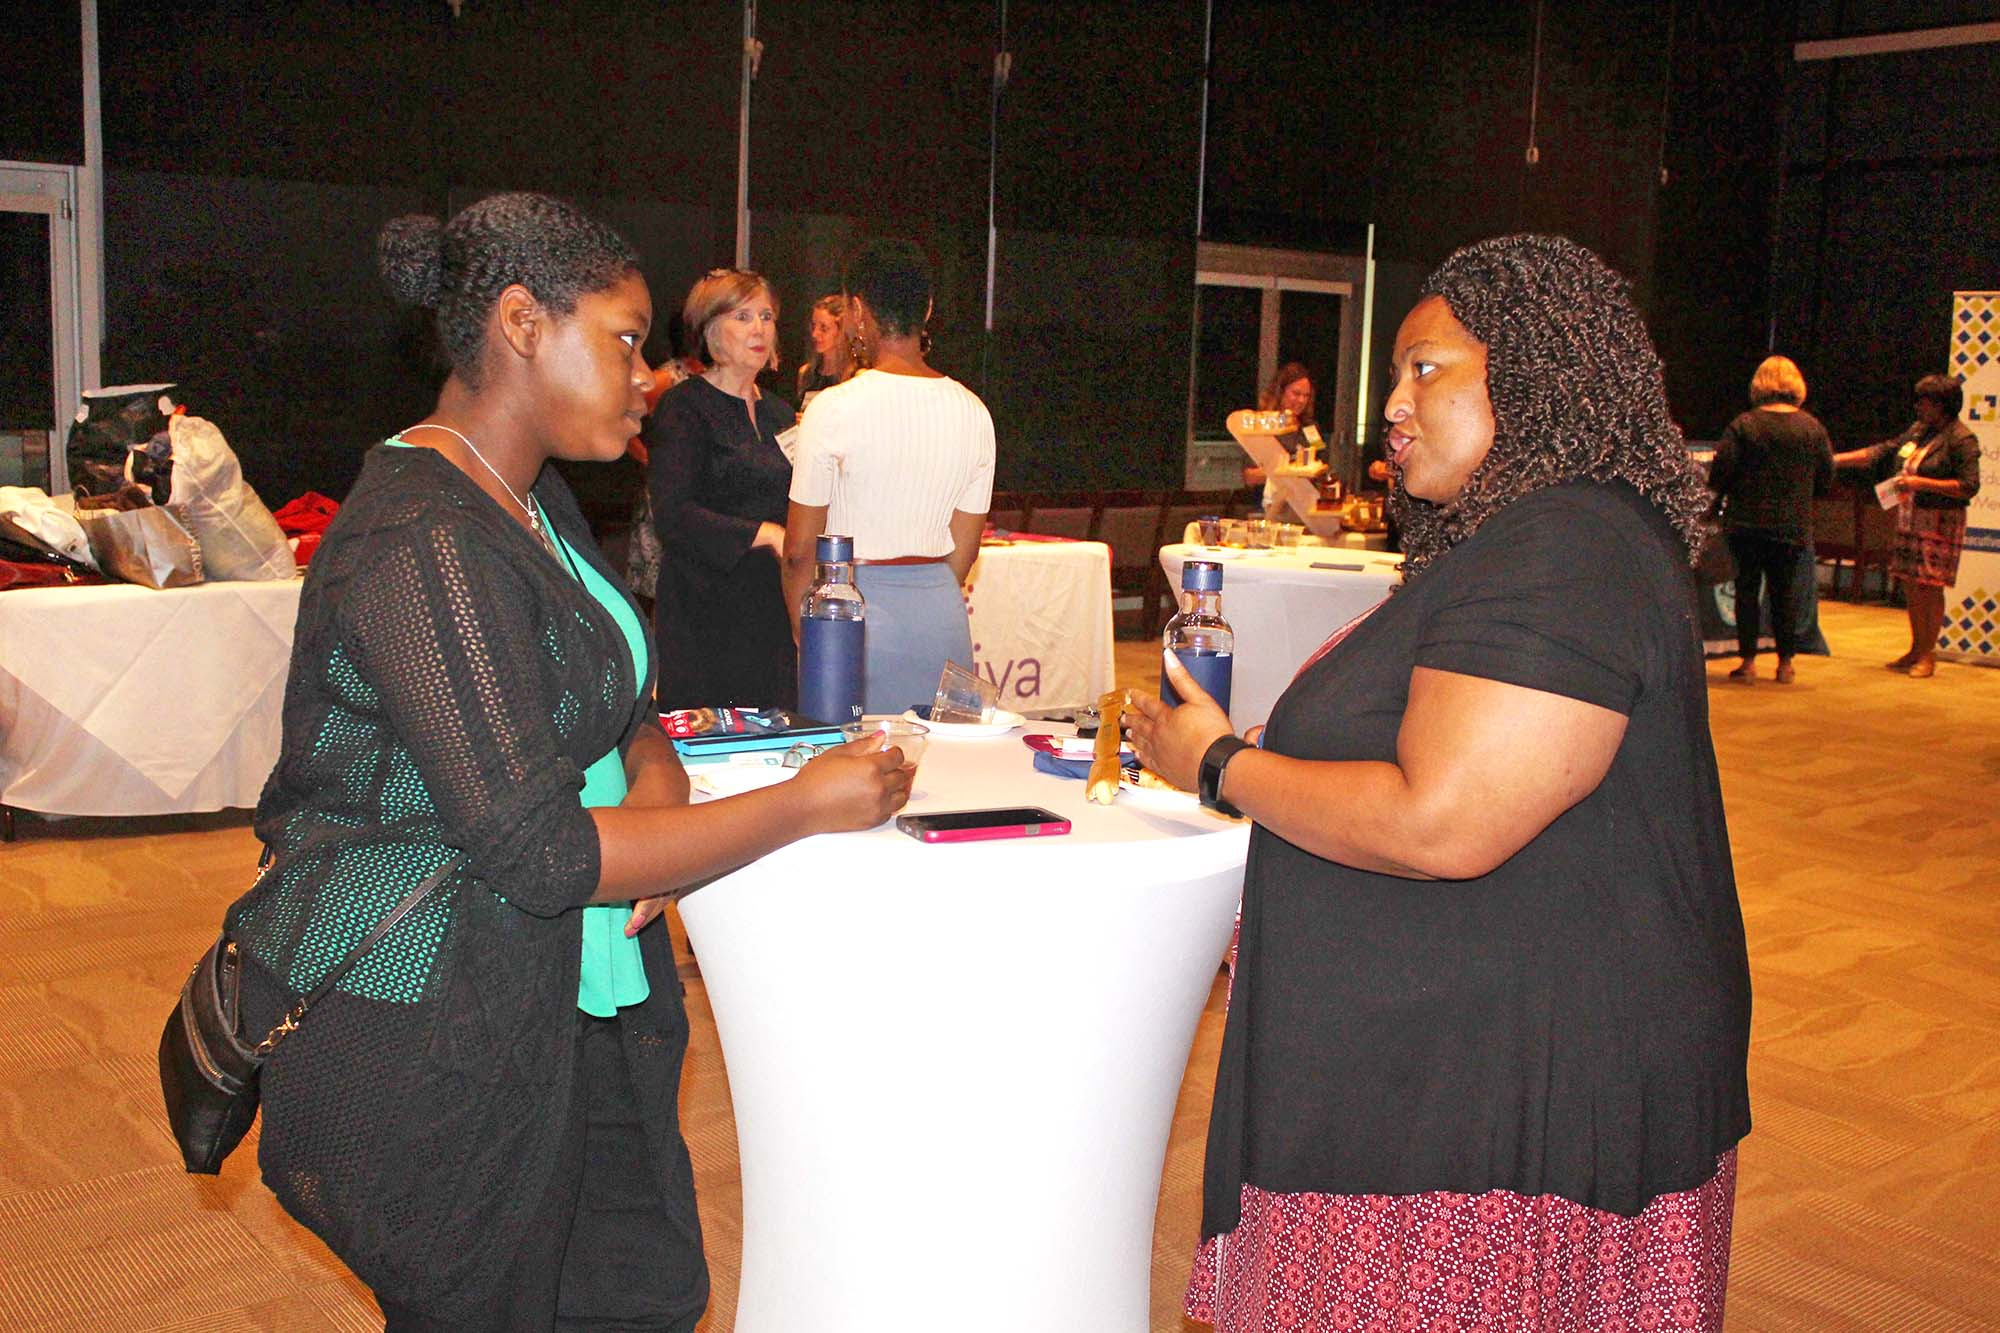 From left, Sharda Smith and Kismet Flagg, Howard Community College, visit during the networking event. (Photo by Patrick Brannan)